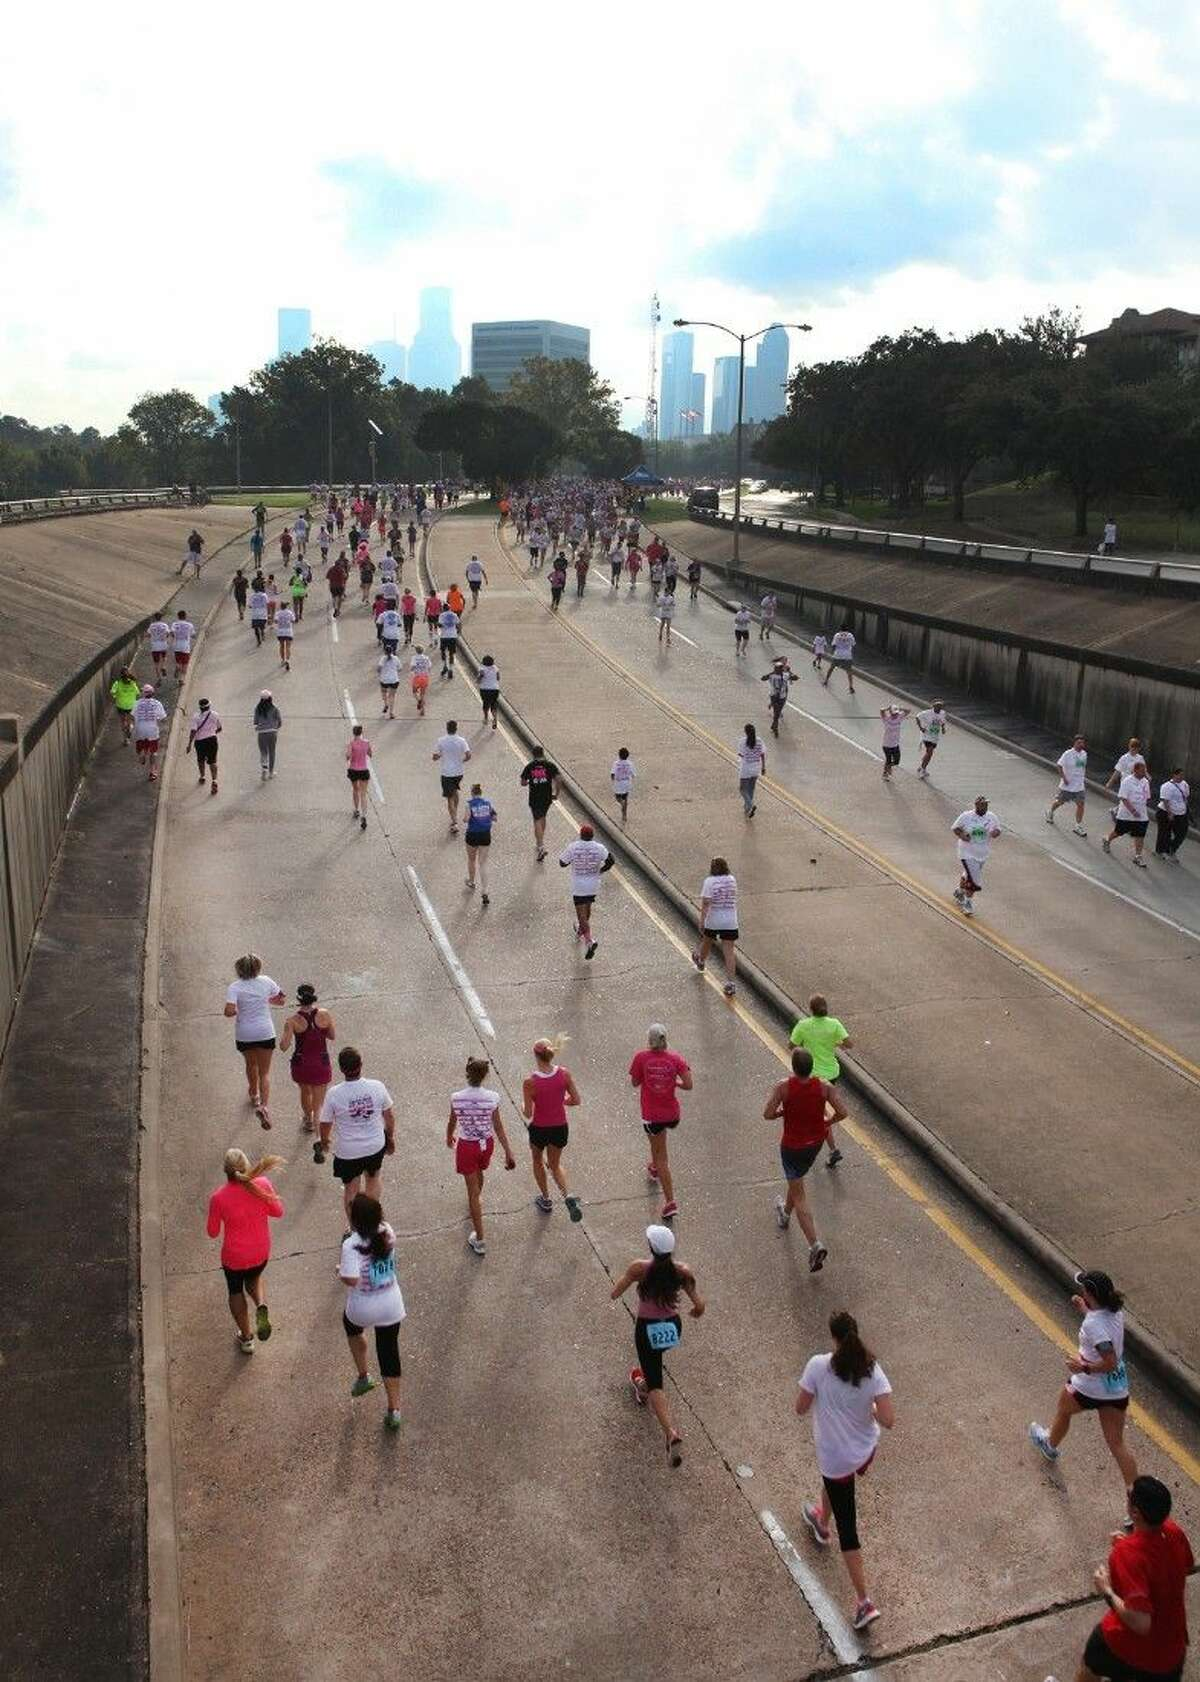 Walkers and runners navigate Allen Parkway in the Komen Houston Race for the Cure in downtown Houston on Saturday, Oct. 6, 2012.